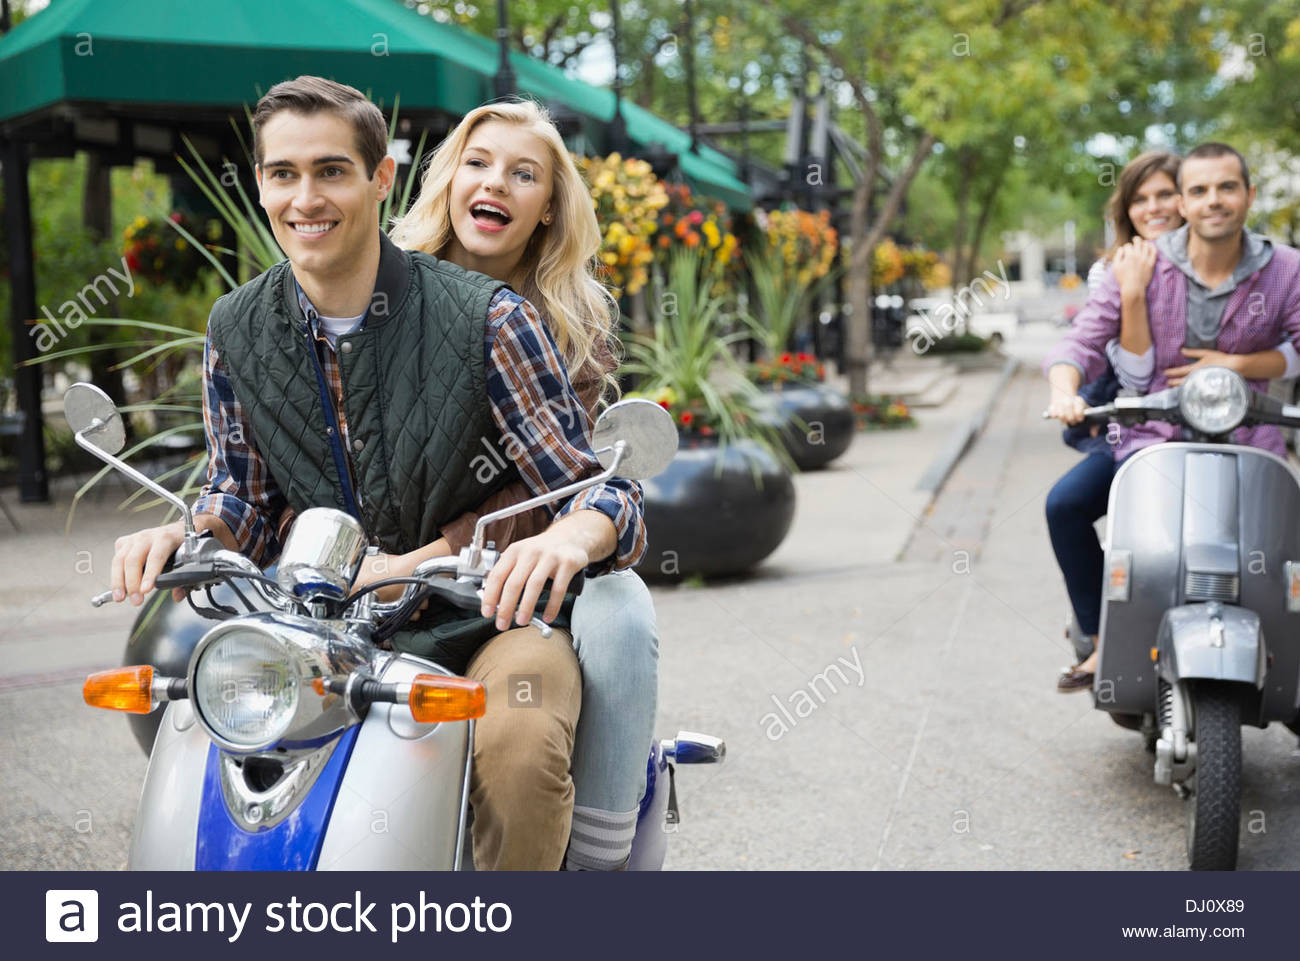 Two couples riding scooters on city street - Stock Image